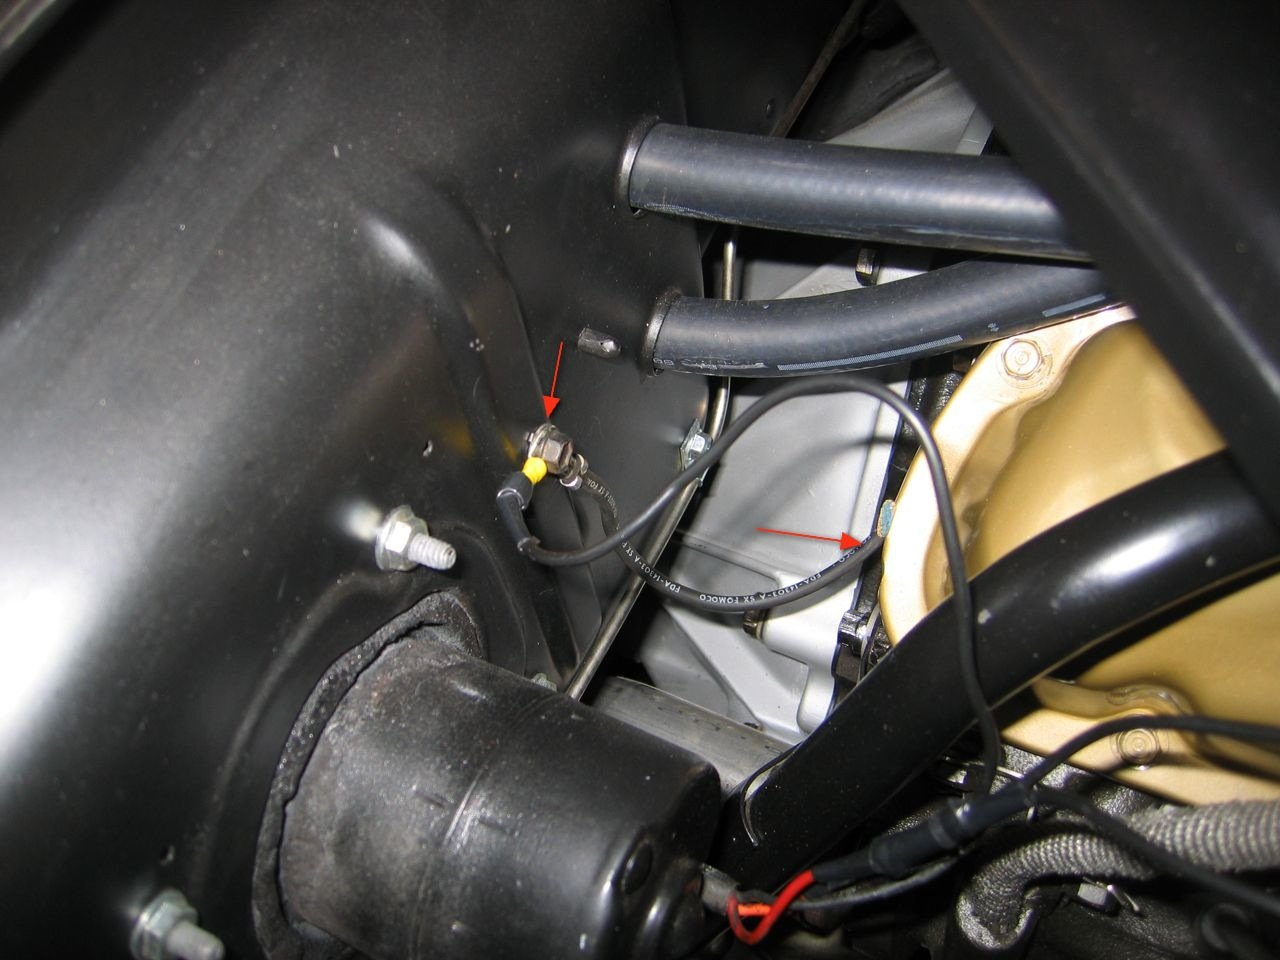 Wire Diagram For 1967 Ford Cobra Proper Way To Ground Engine And Chassis Ford Mustang Forum